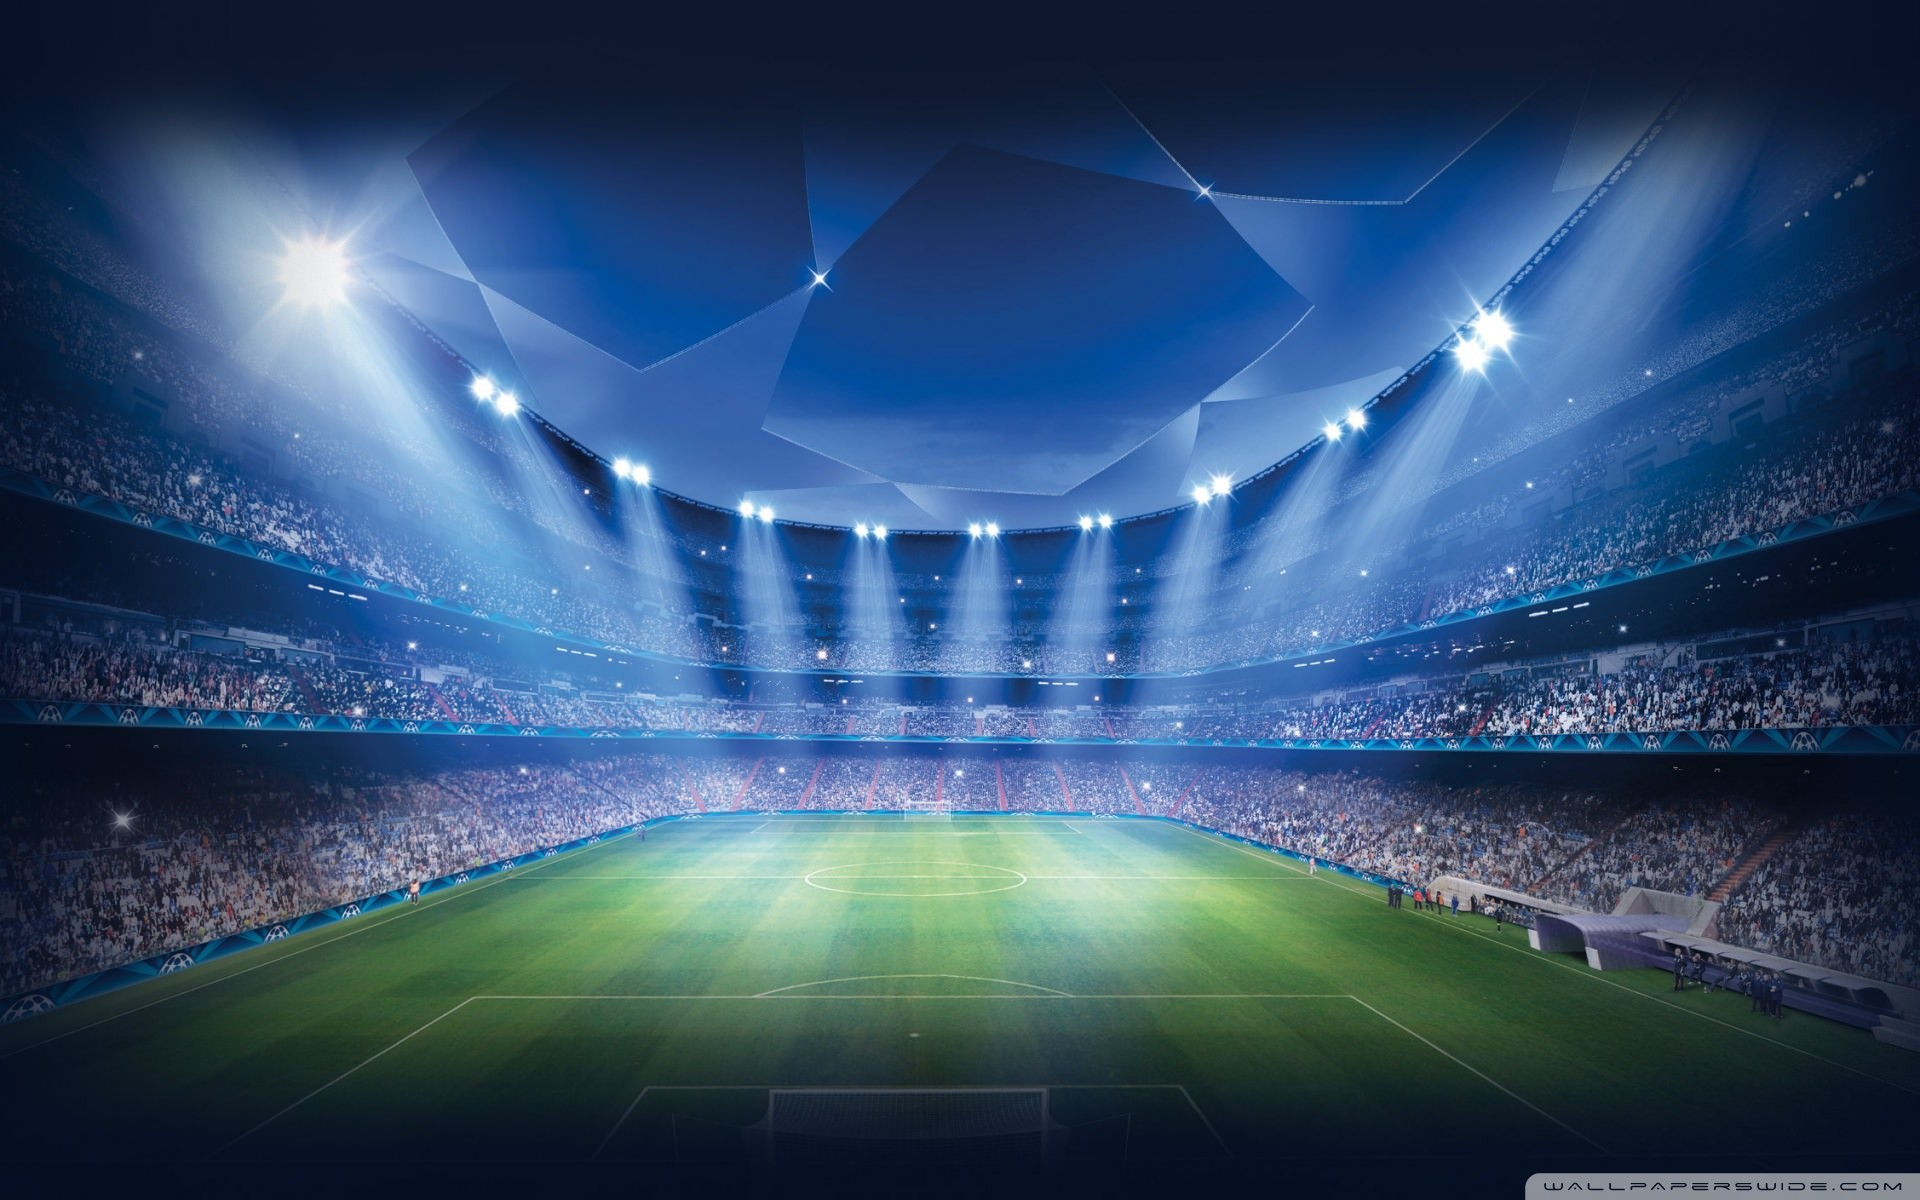 Metalist Stadium Euro Football HD wallpaper for your PC, Mac or Mobile  device | Desktop Wallpapers | Pinterest | Desktop wallpapers, Desktop  backgrounds and …